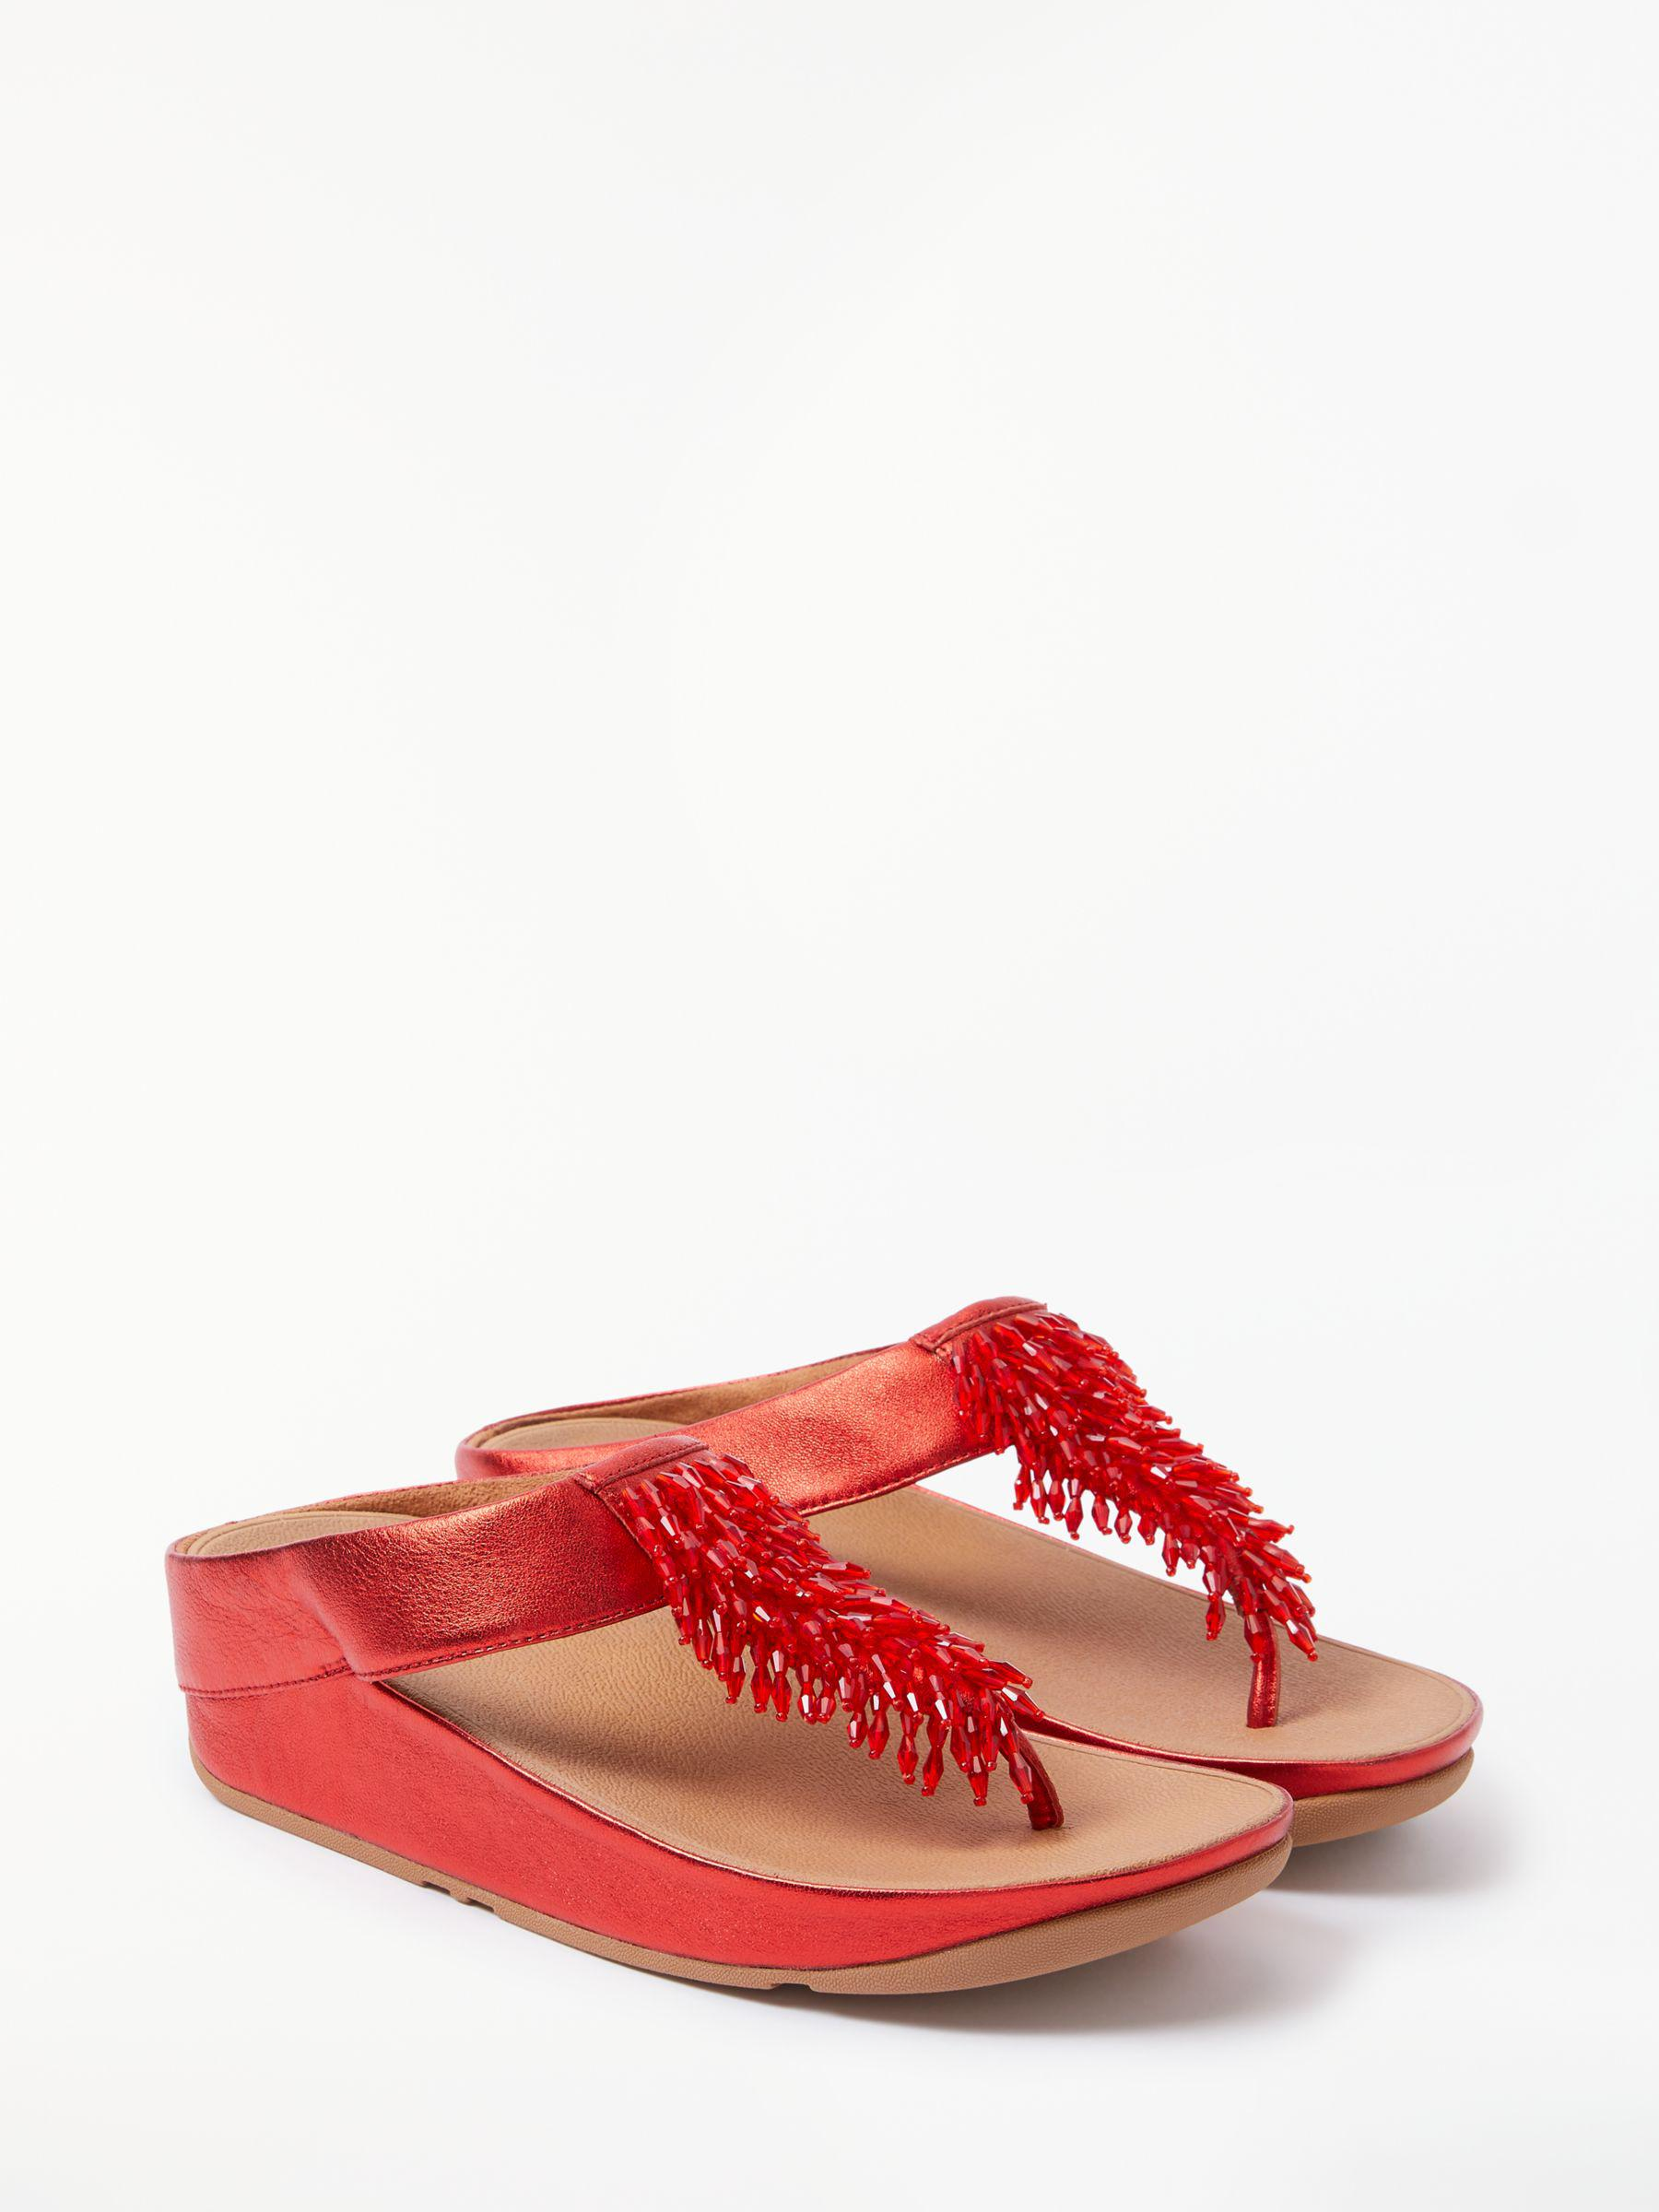 d0bebb861c92 Fitflop Rumba Embellished Toe Post Sandals in Red - Save 40% - Lyst